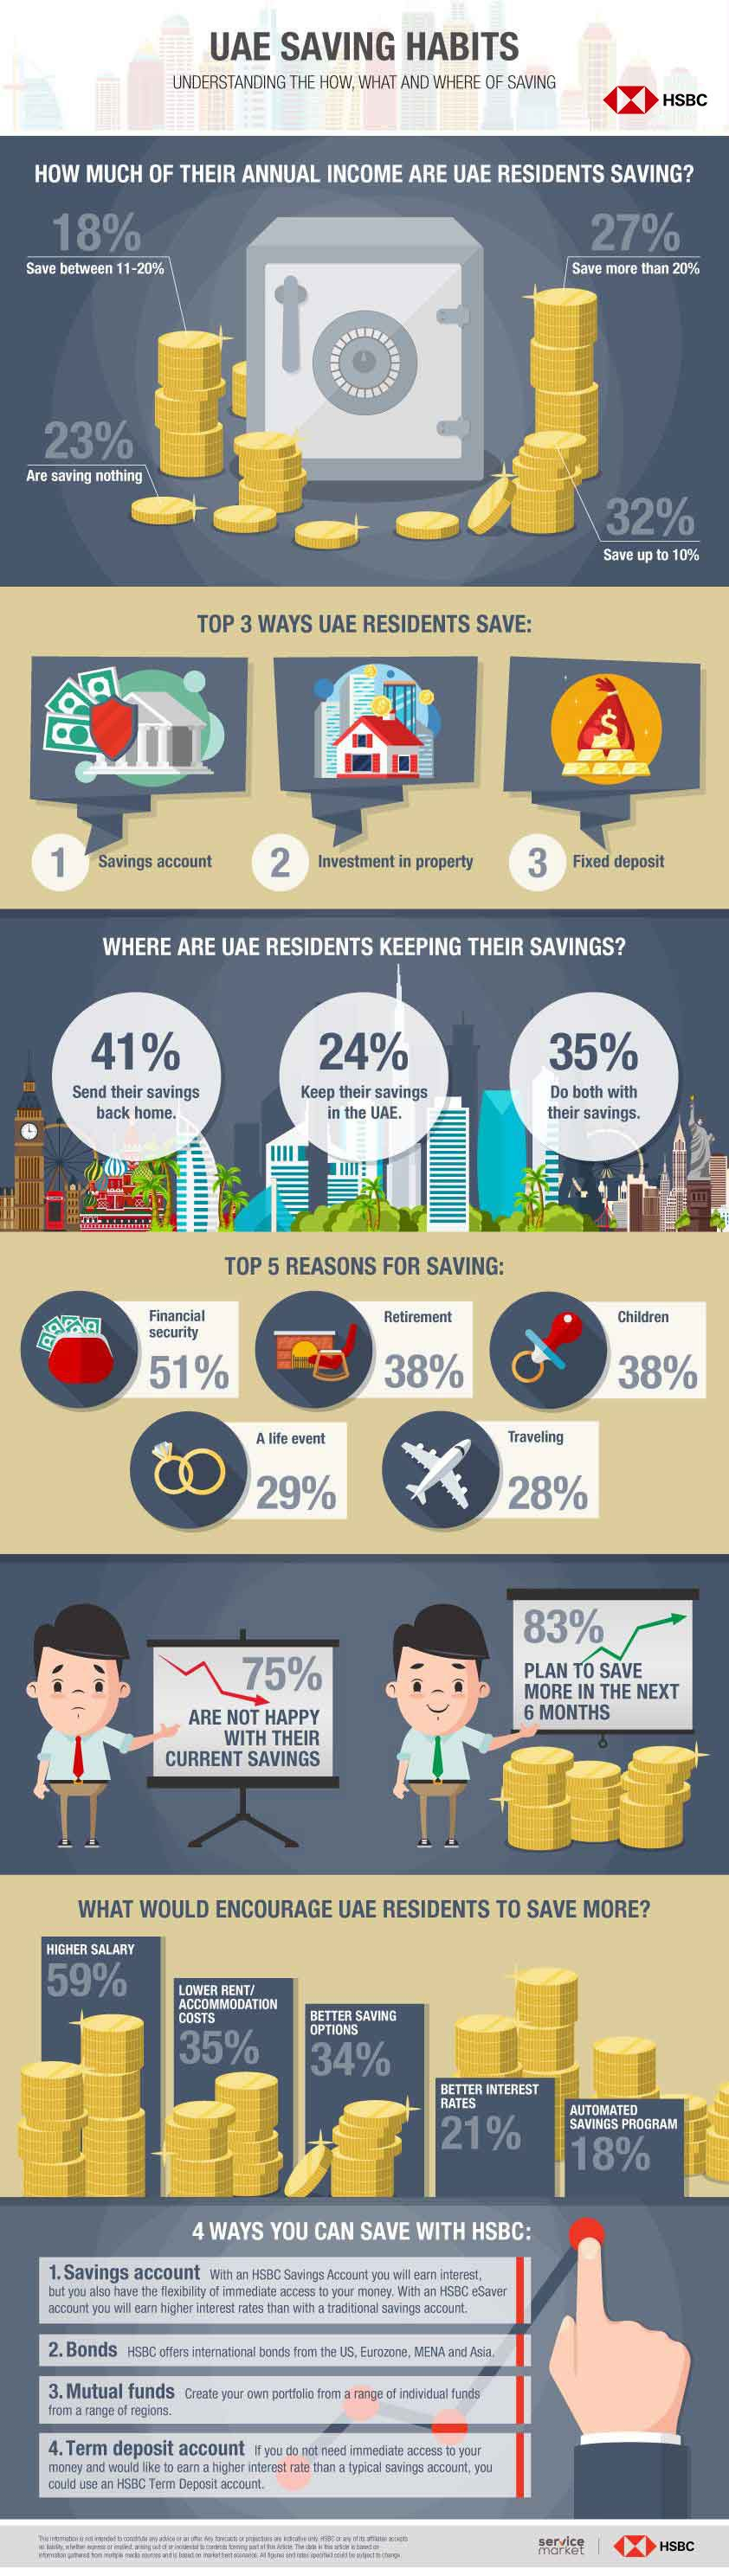 How Much Are UAE Residents Really Saving? - The Home Project